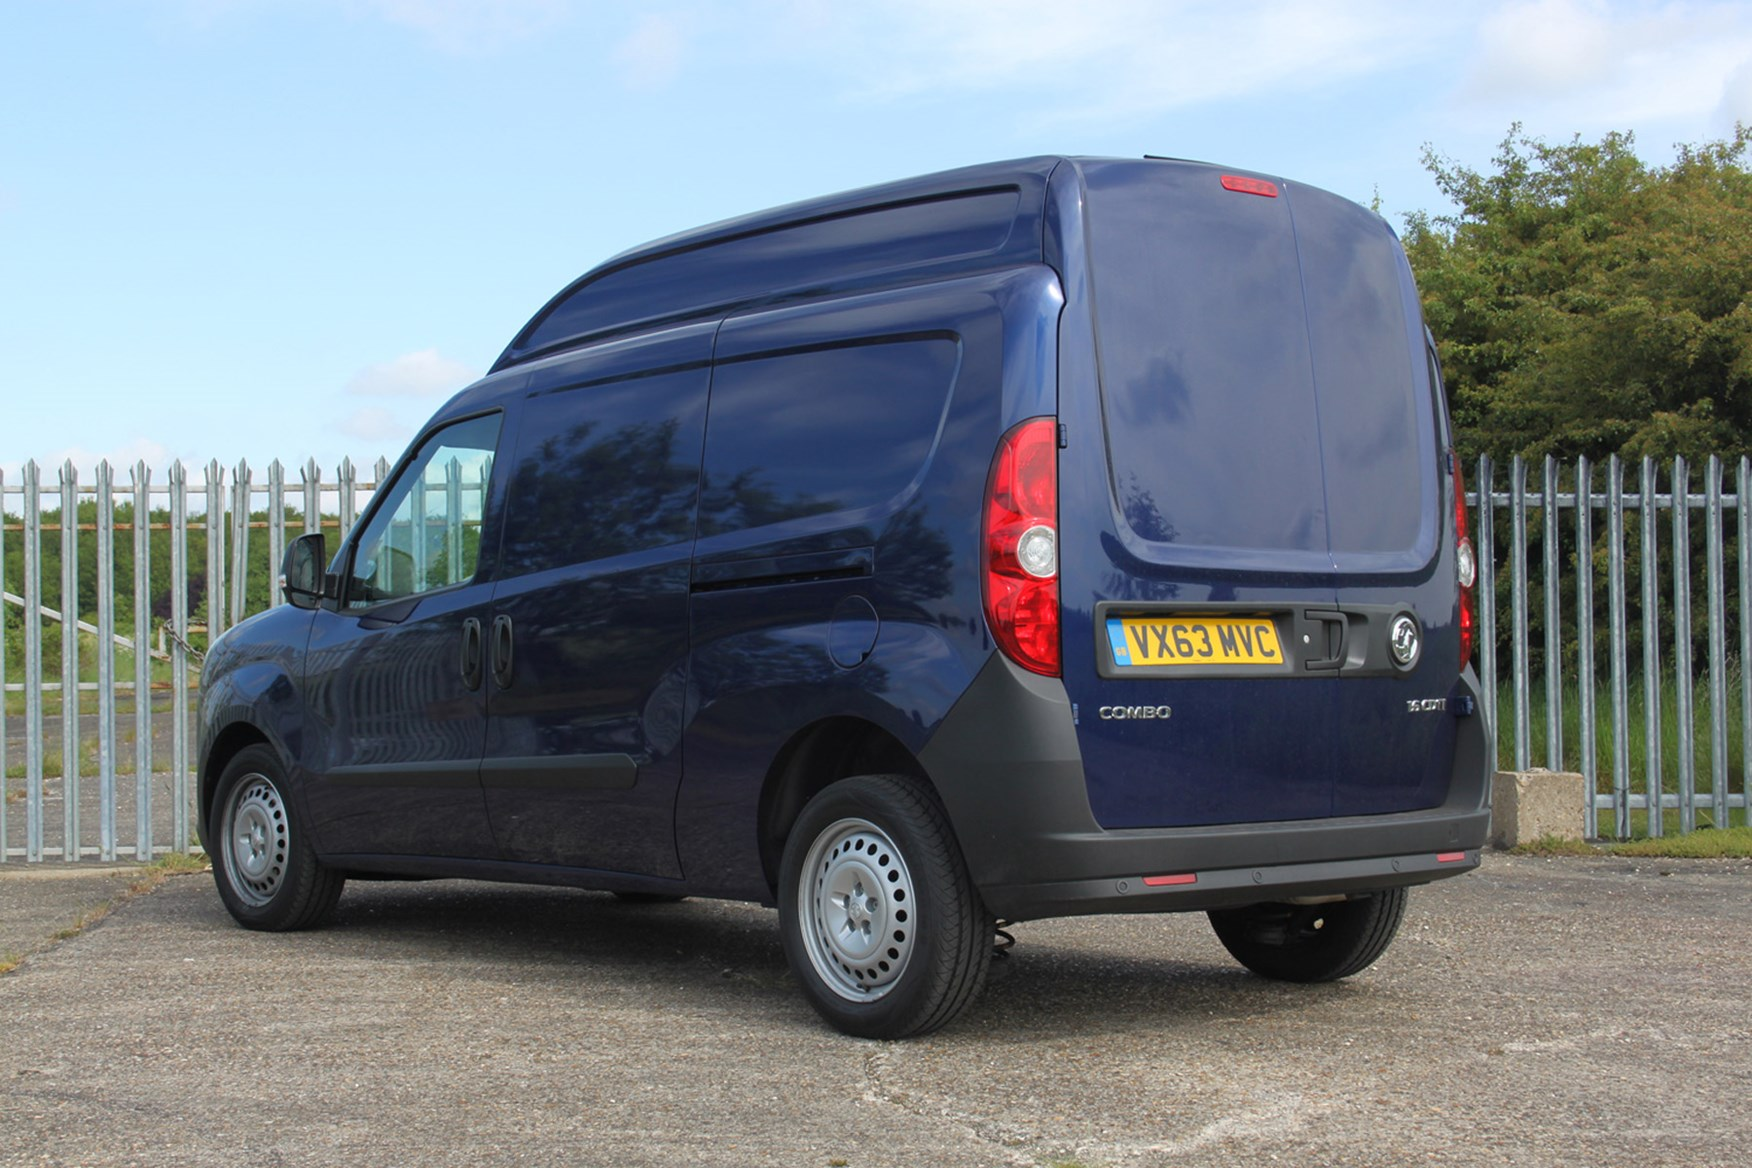 Vauxhall Combo full review on Parkers Vans - rear exterior